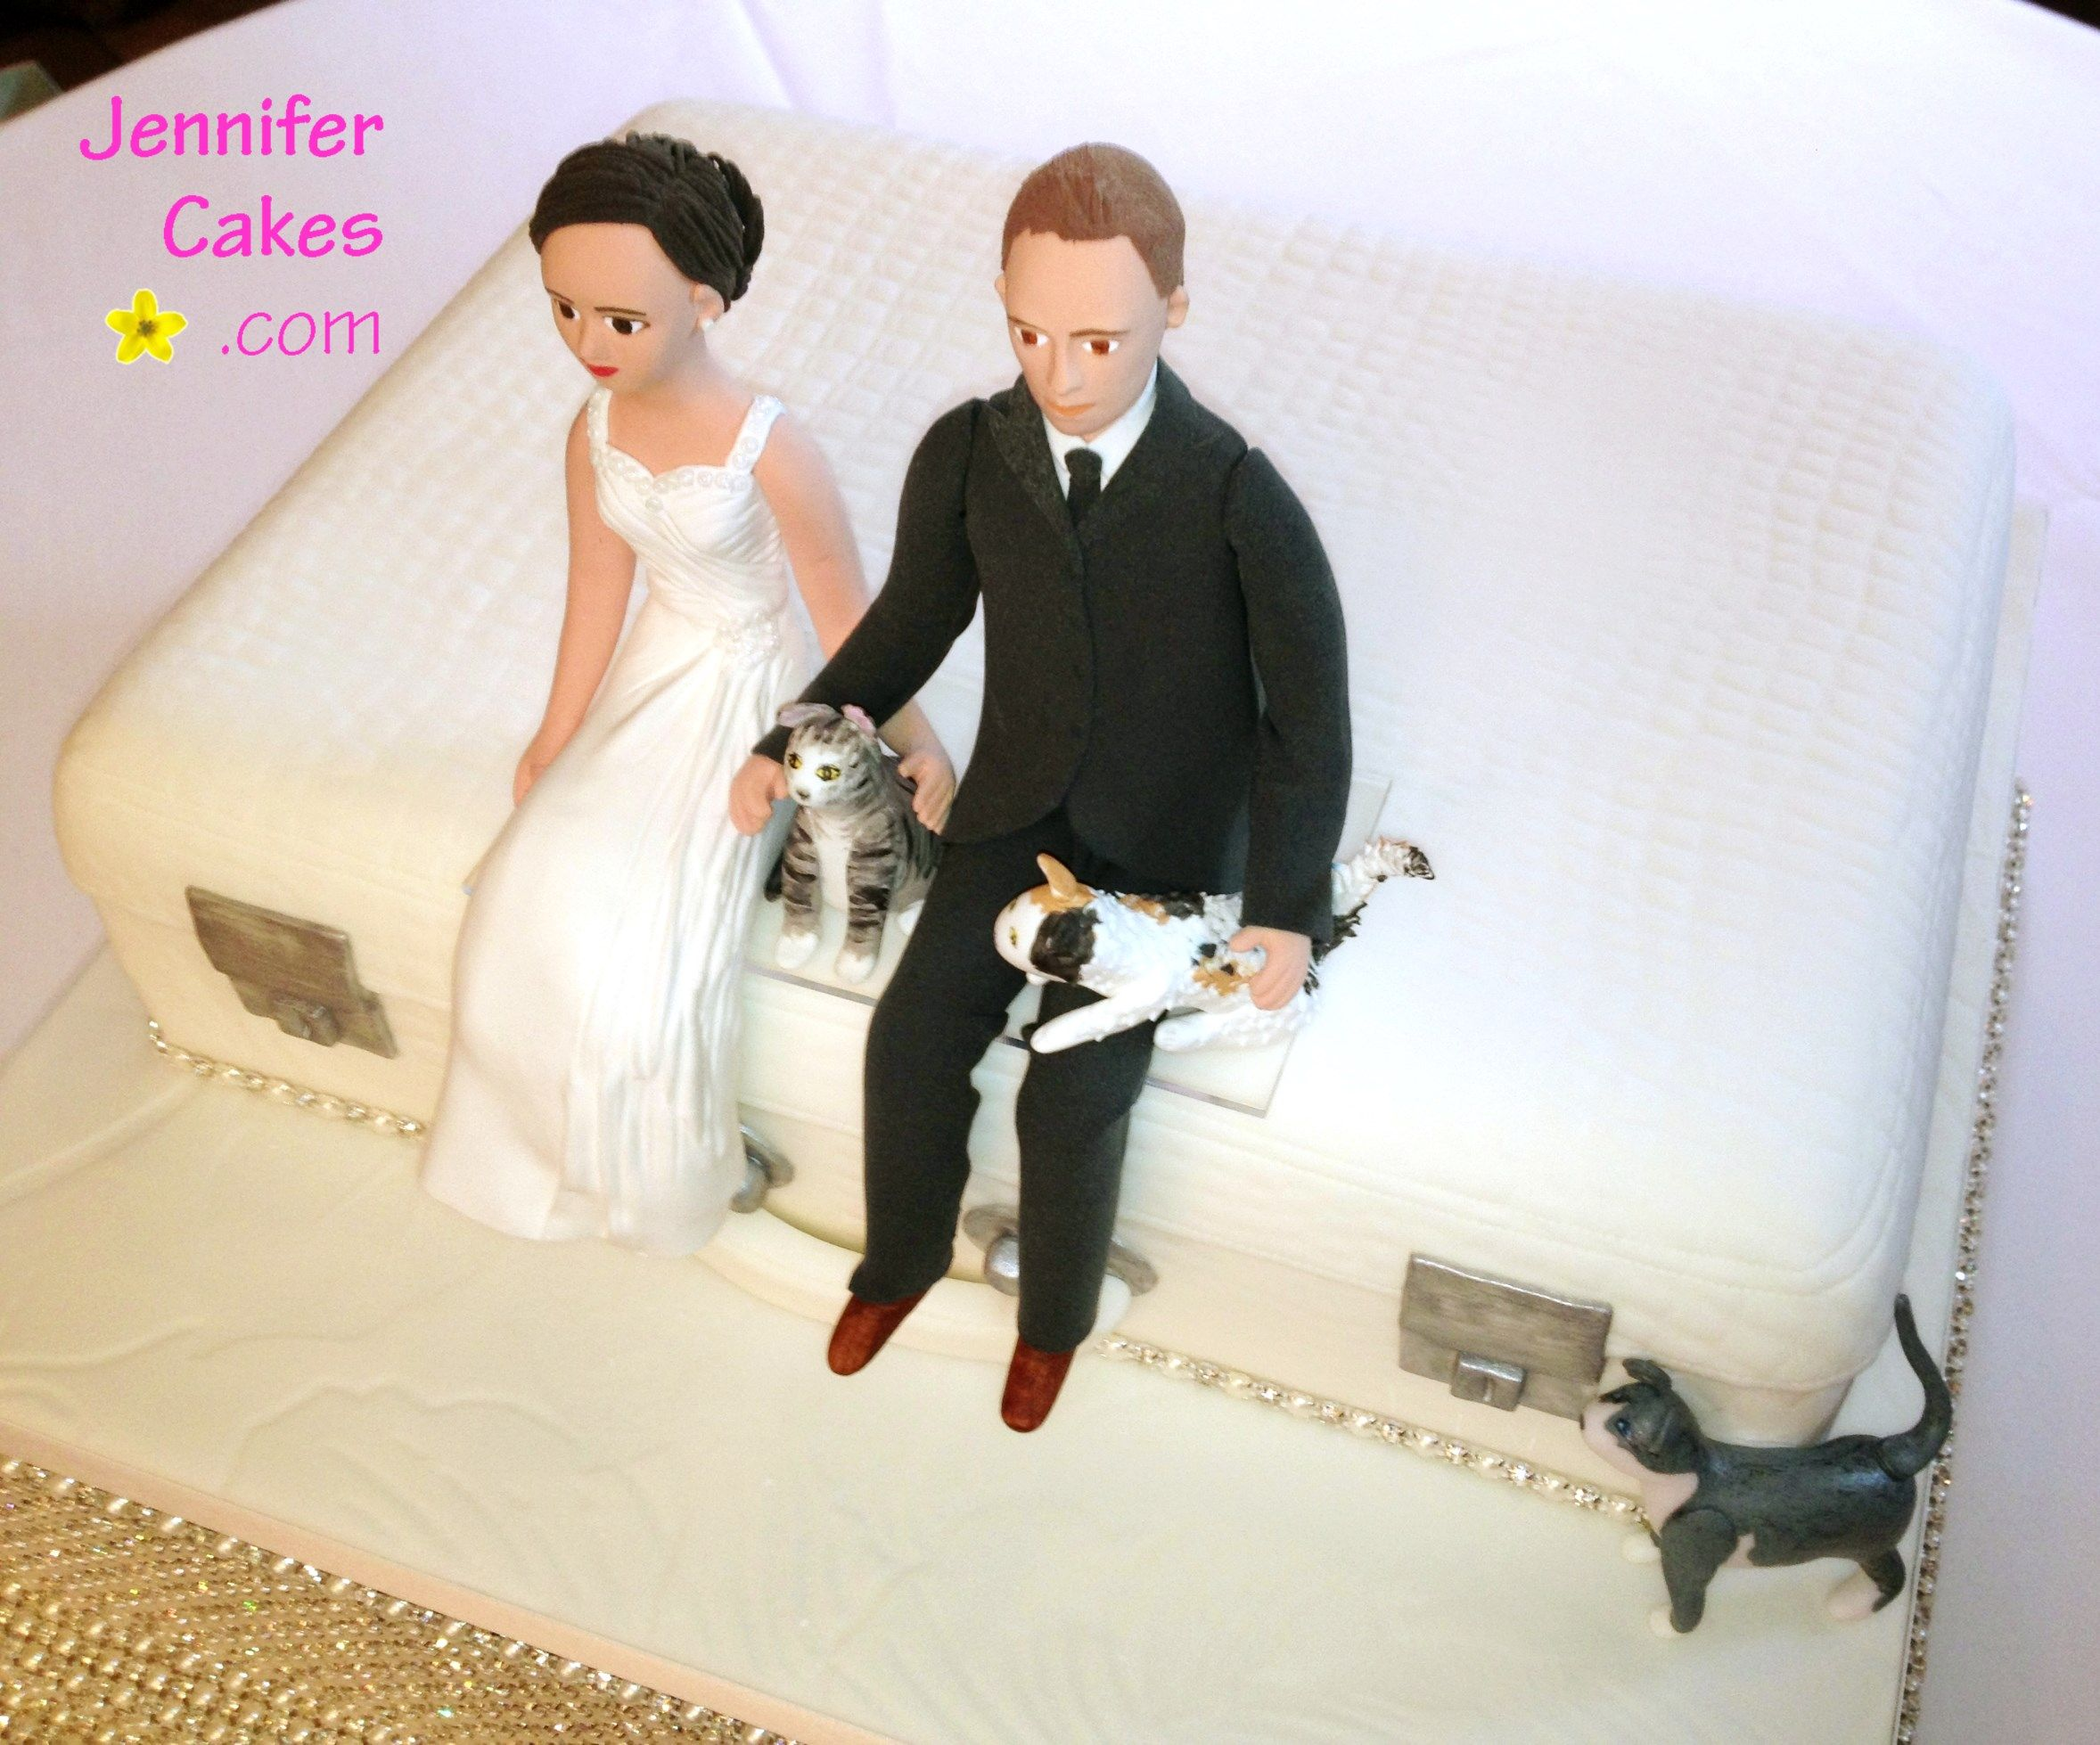 Bride & groom with cats wedding cake topper jennifercakes